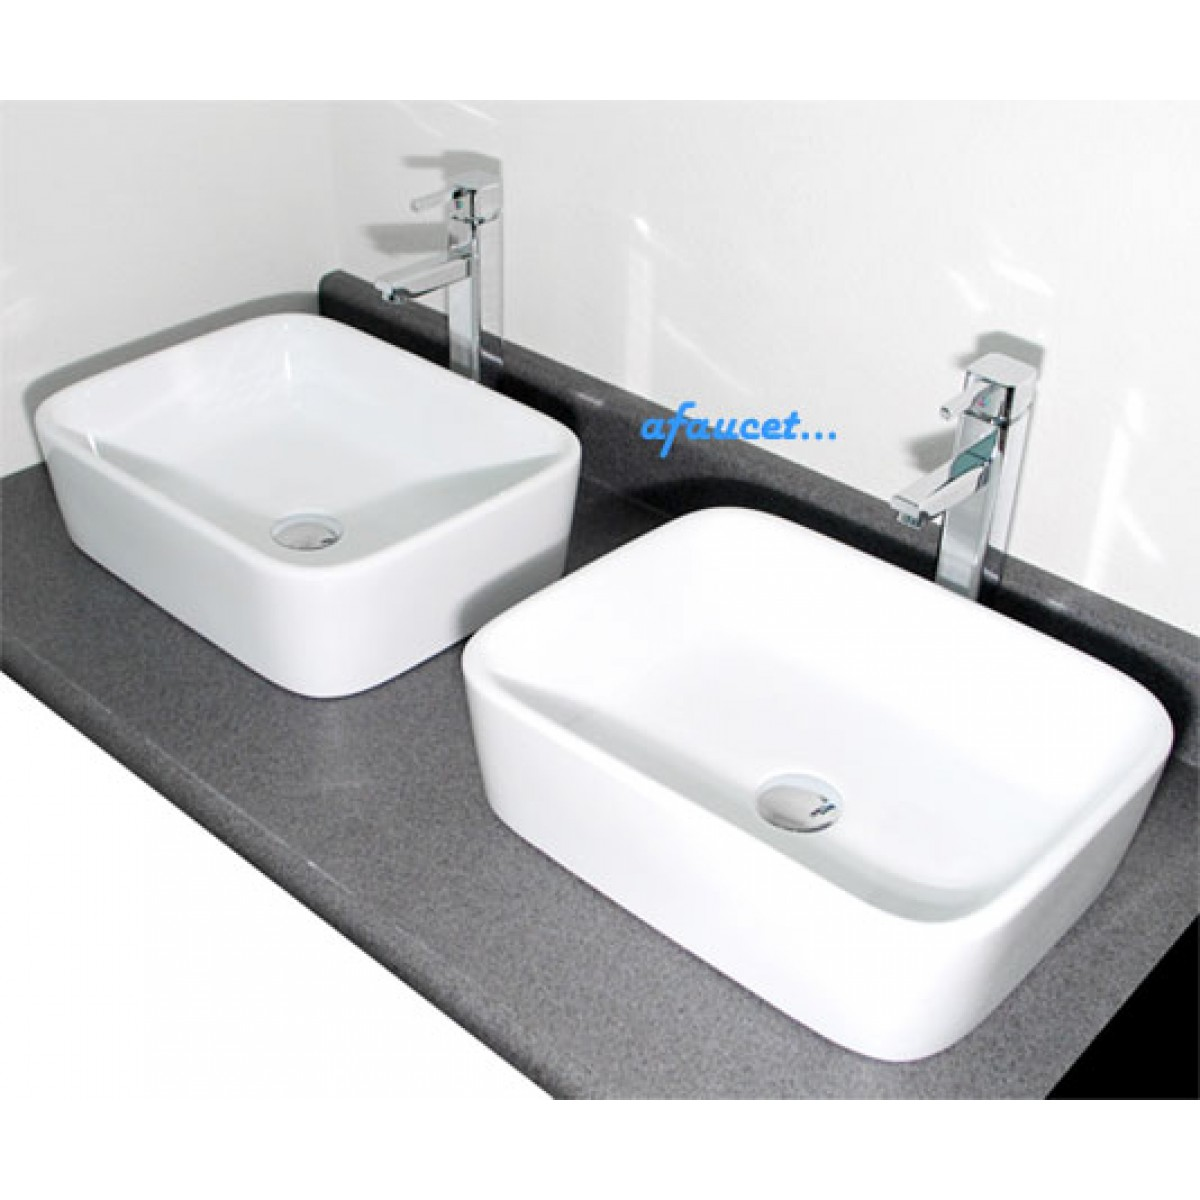 Rectangular white porcelain ceramic countertop bathroom for How to install vessel sink